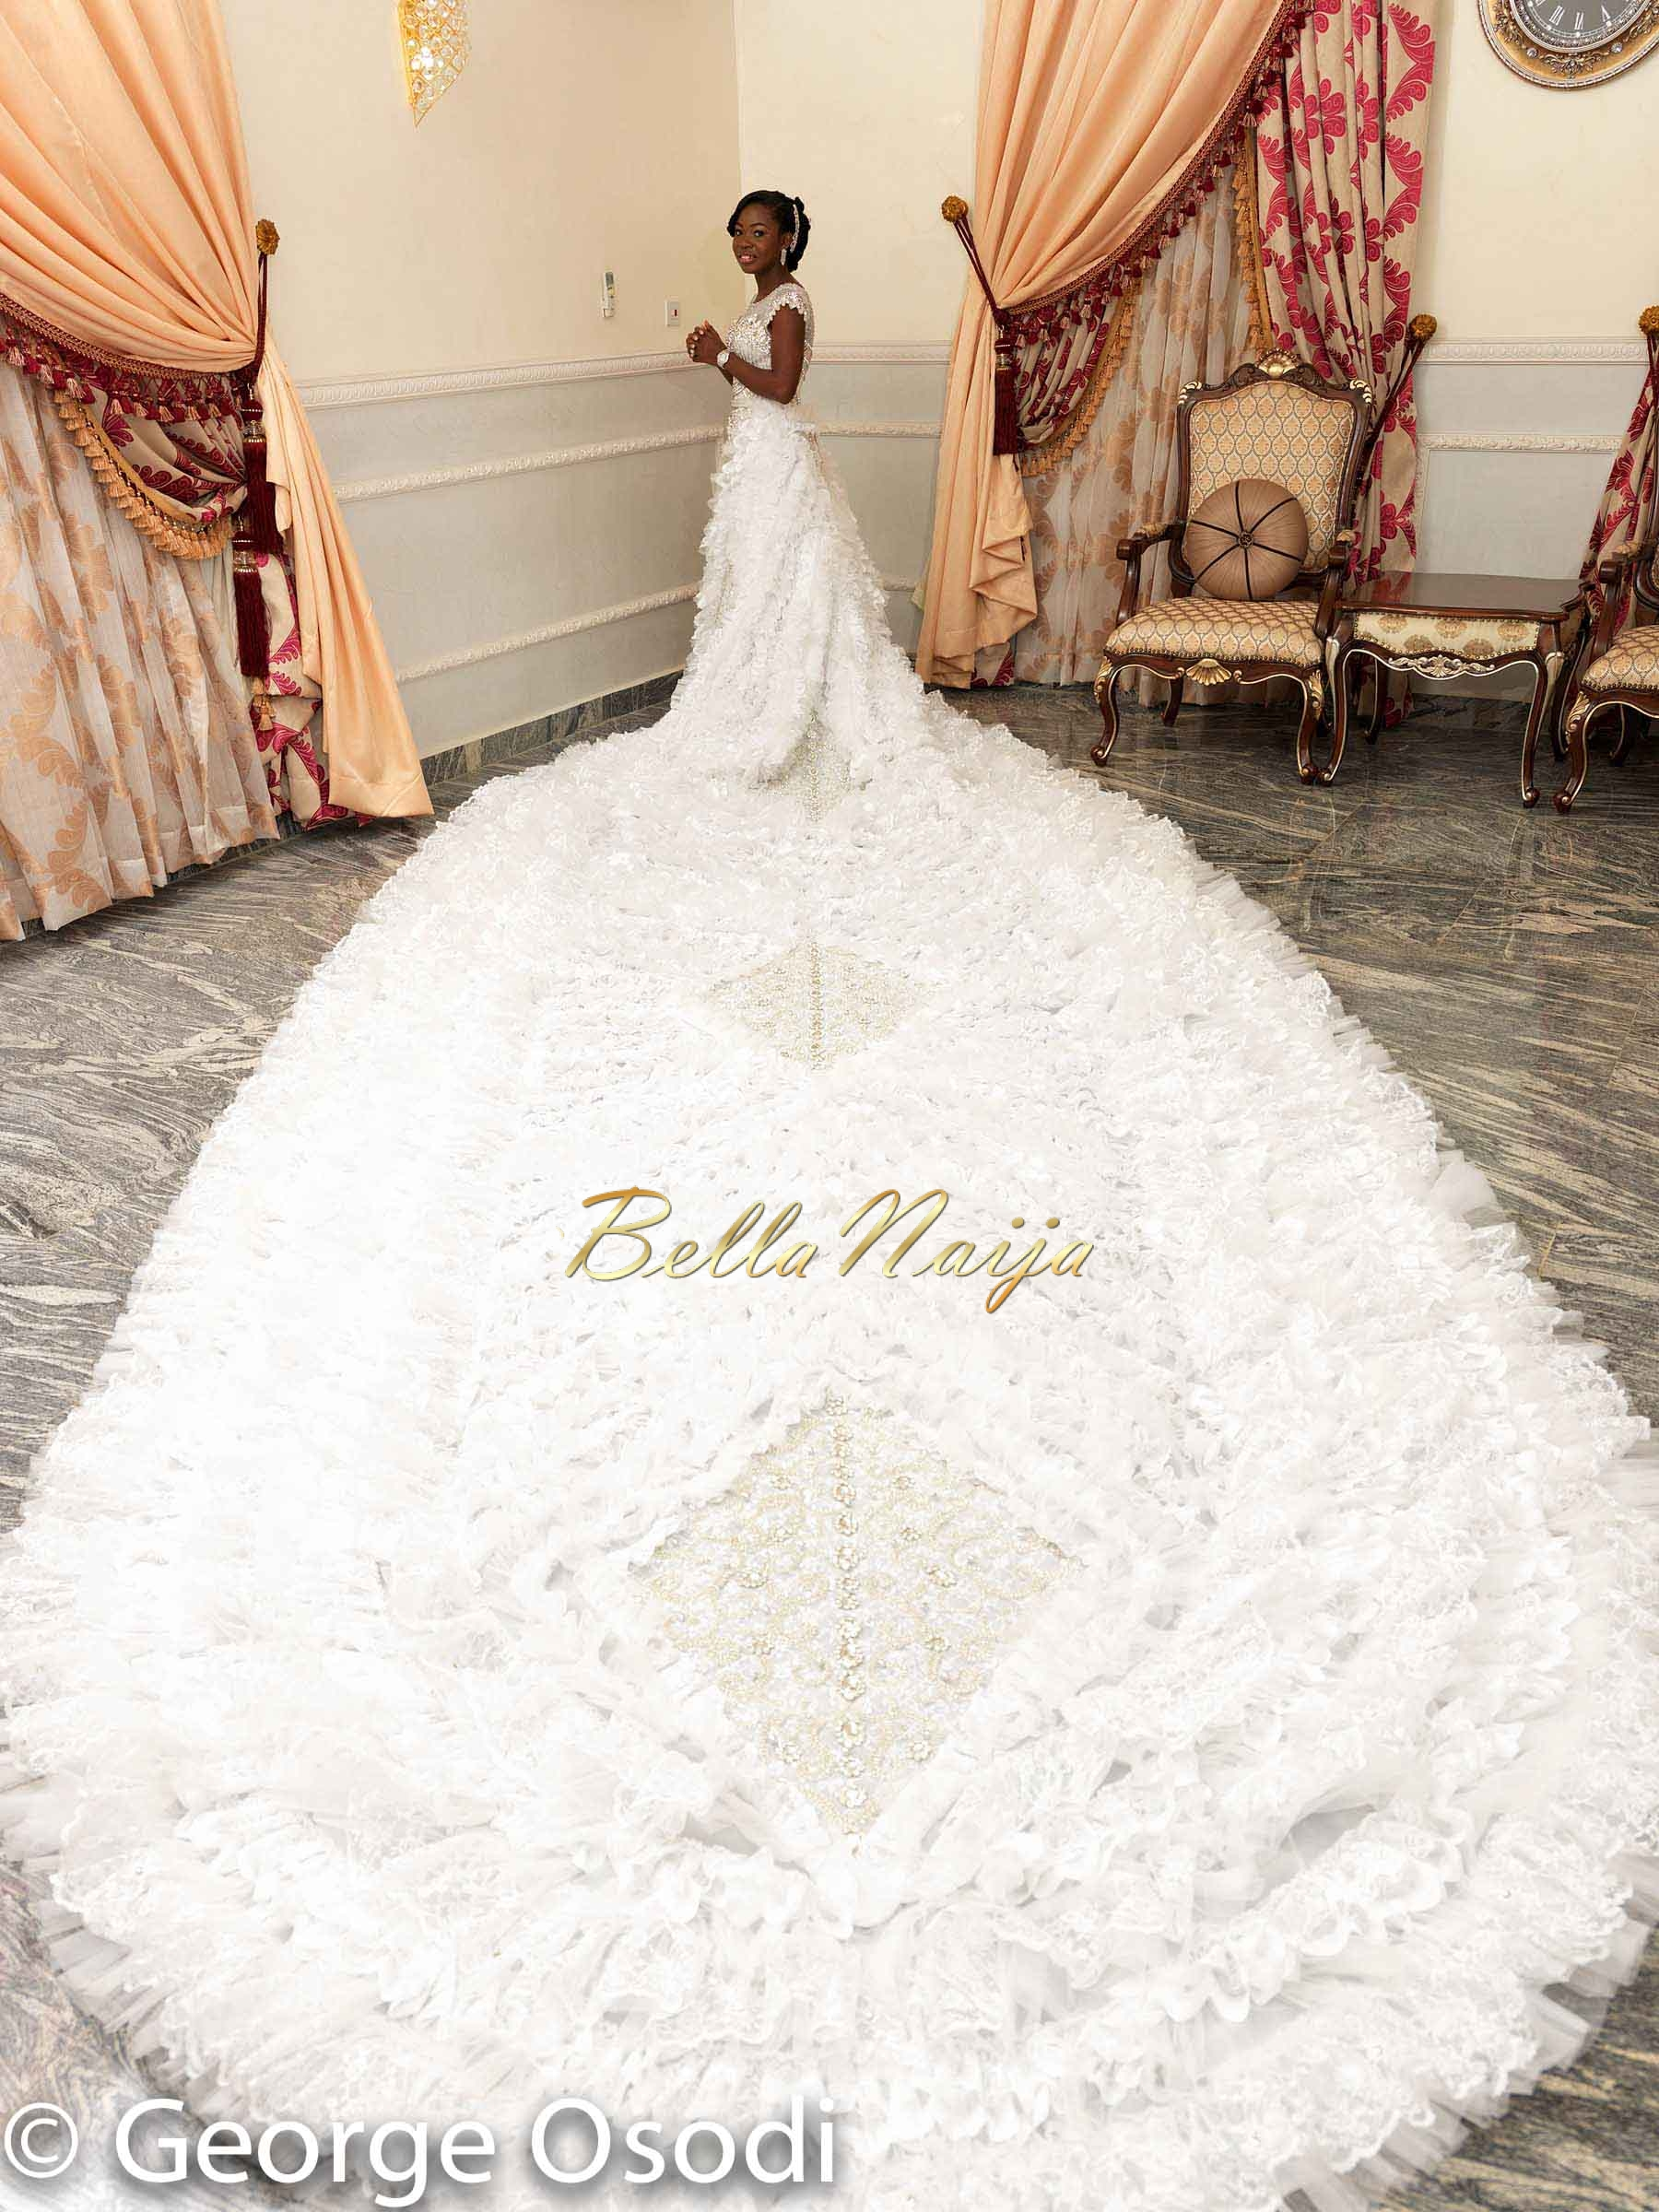 Traditional Wedding Gift From Mother To Daughter : ... Daughter Faith & Godswills Trad & White Wedding George Osodi